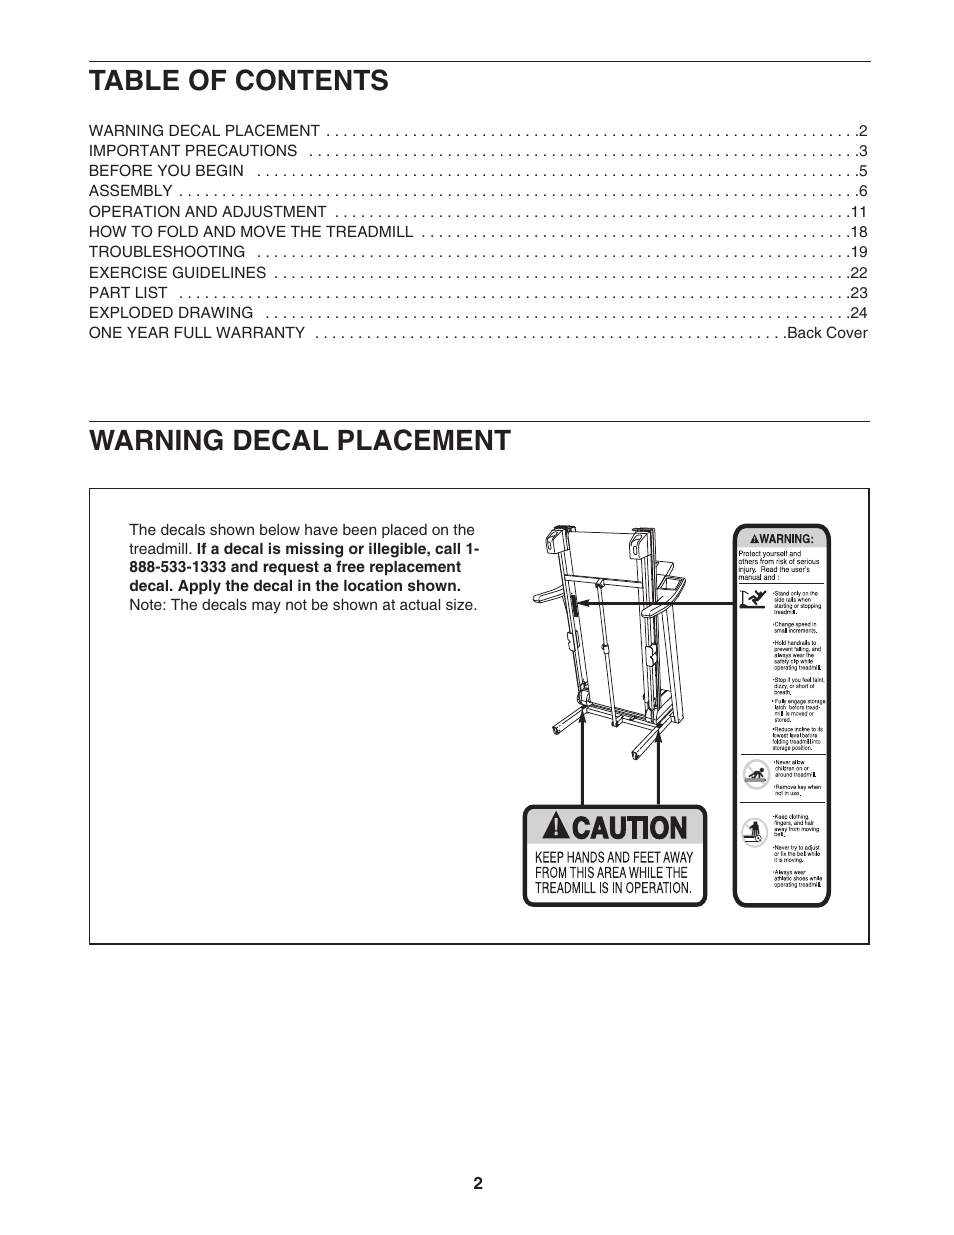 Proform Xp 615 831247453 User Manual Page 2 28 Treadmill Wiring Diagram